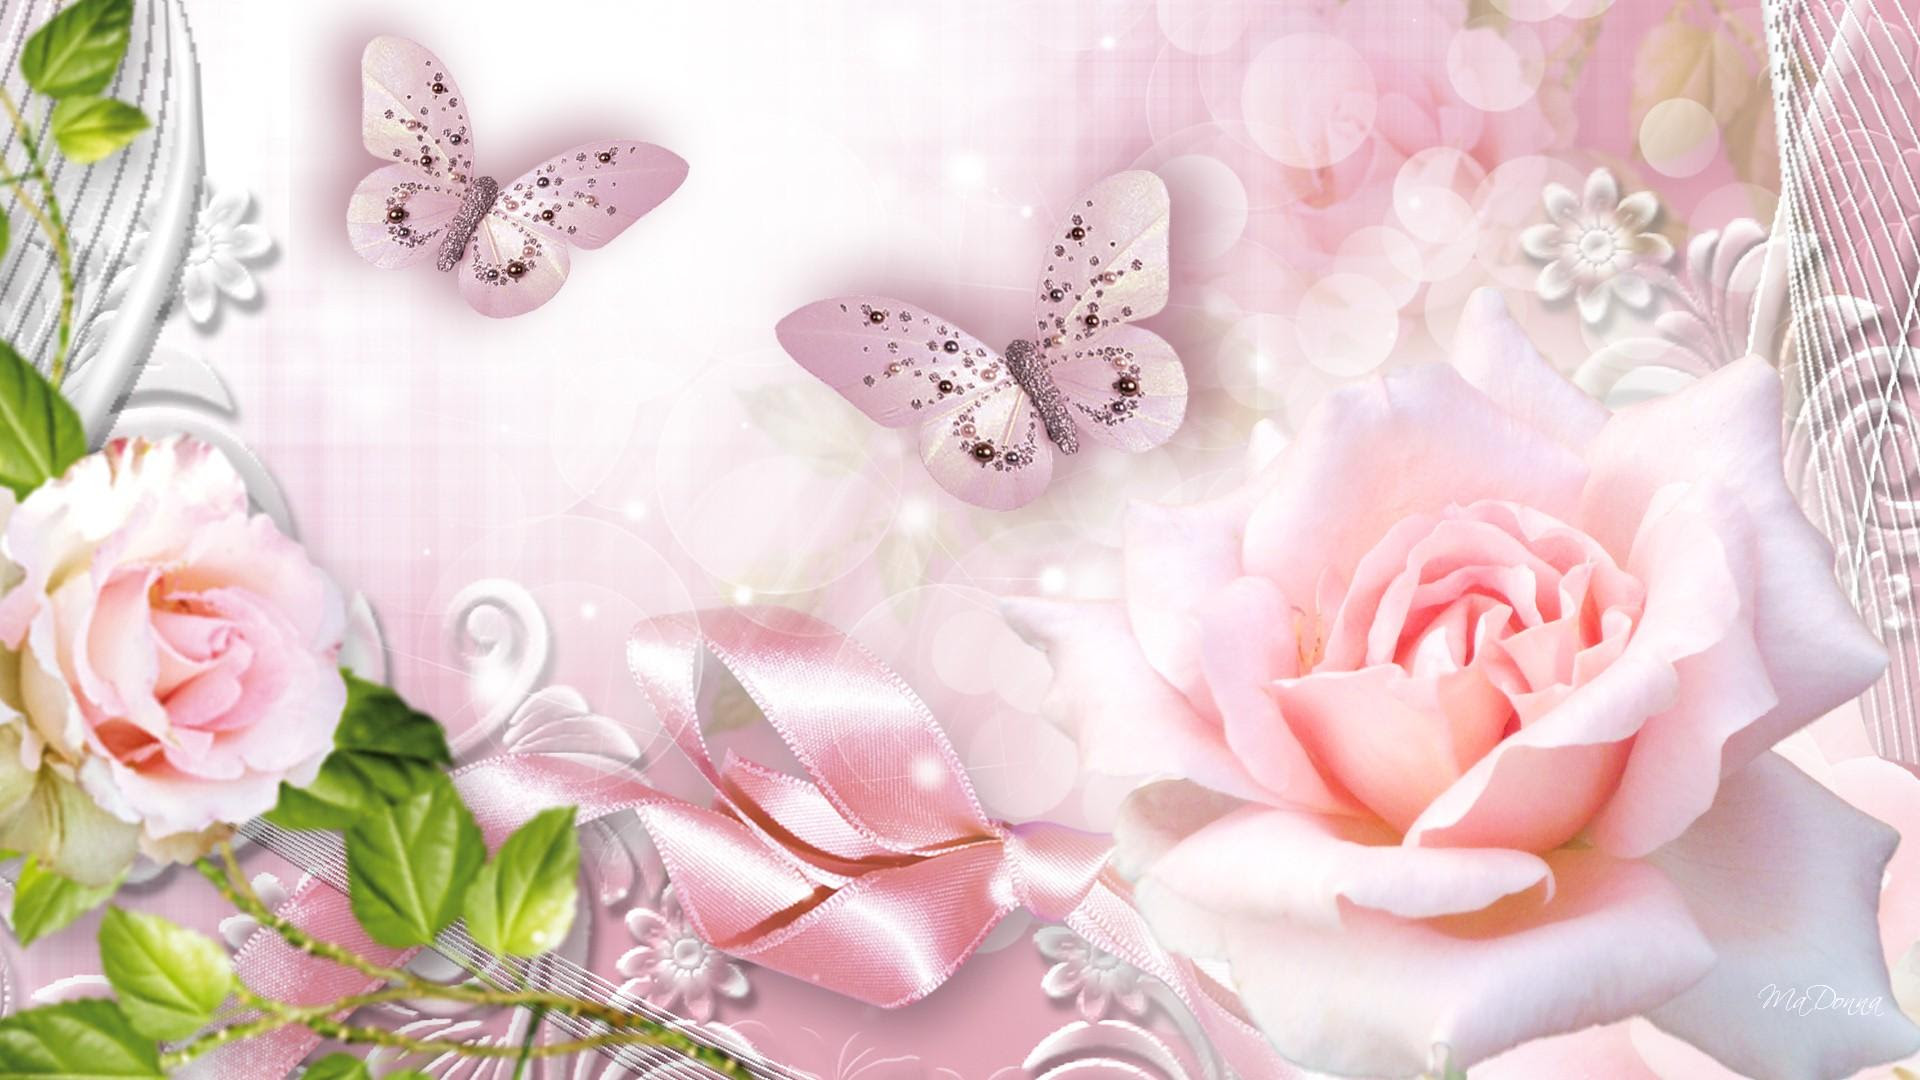 Roses Pink Glow wallpaper   nature and landscape ...